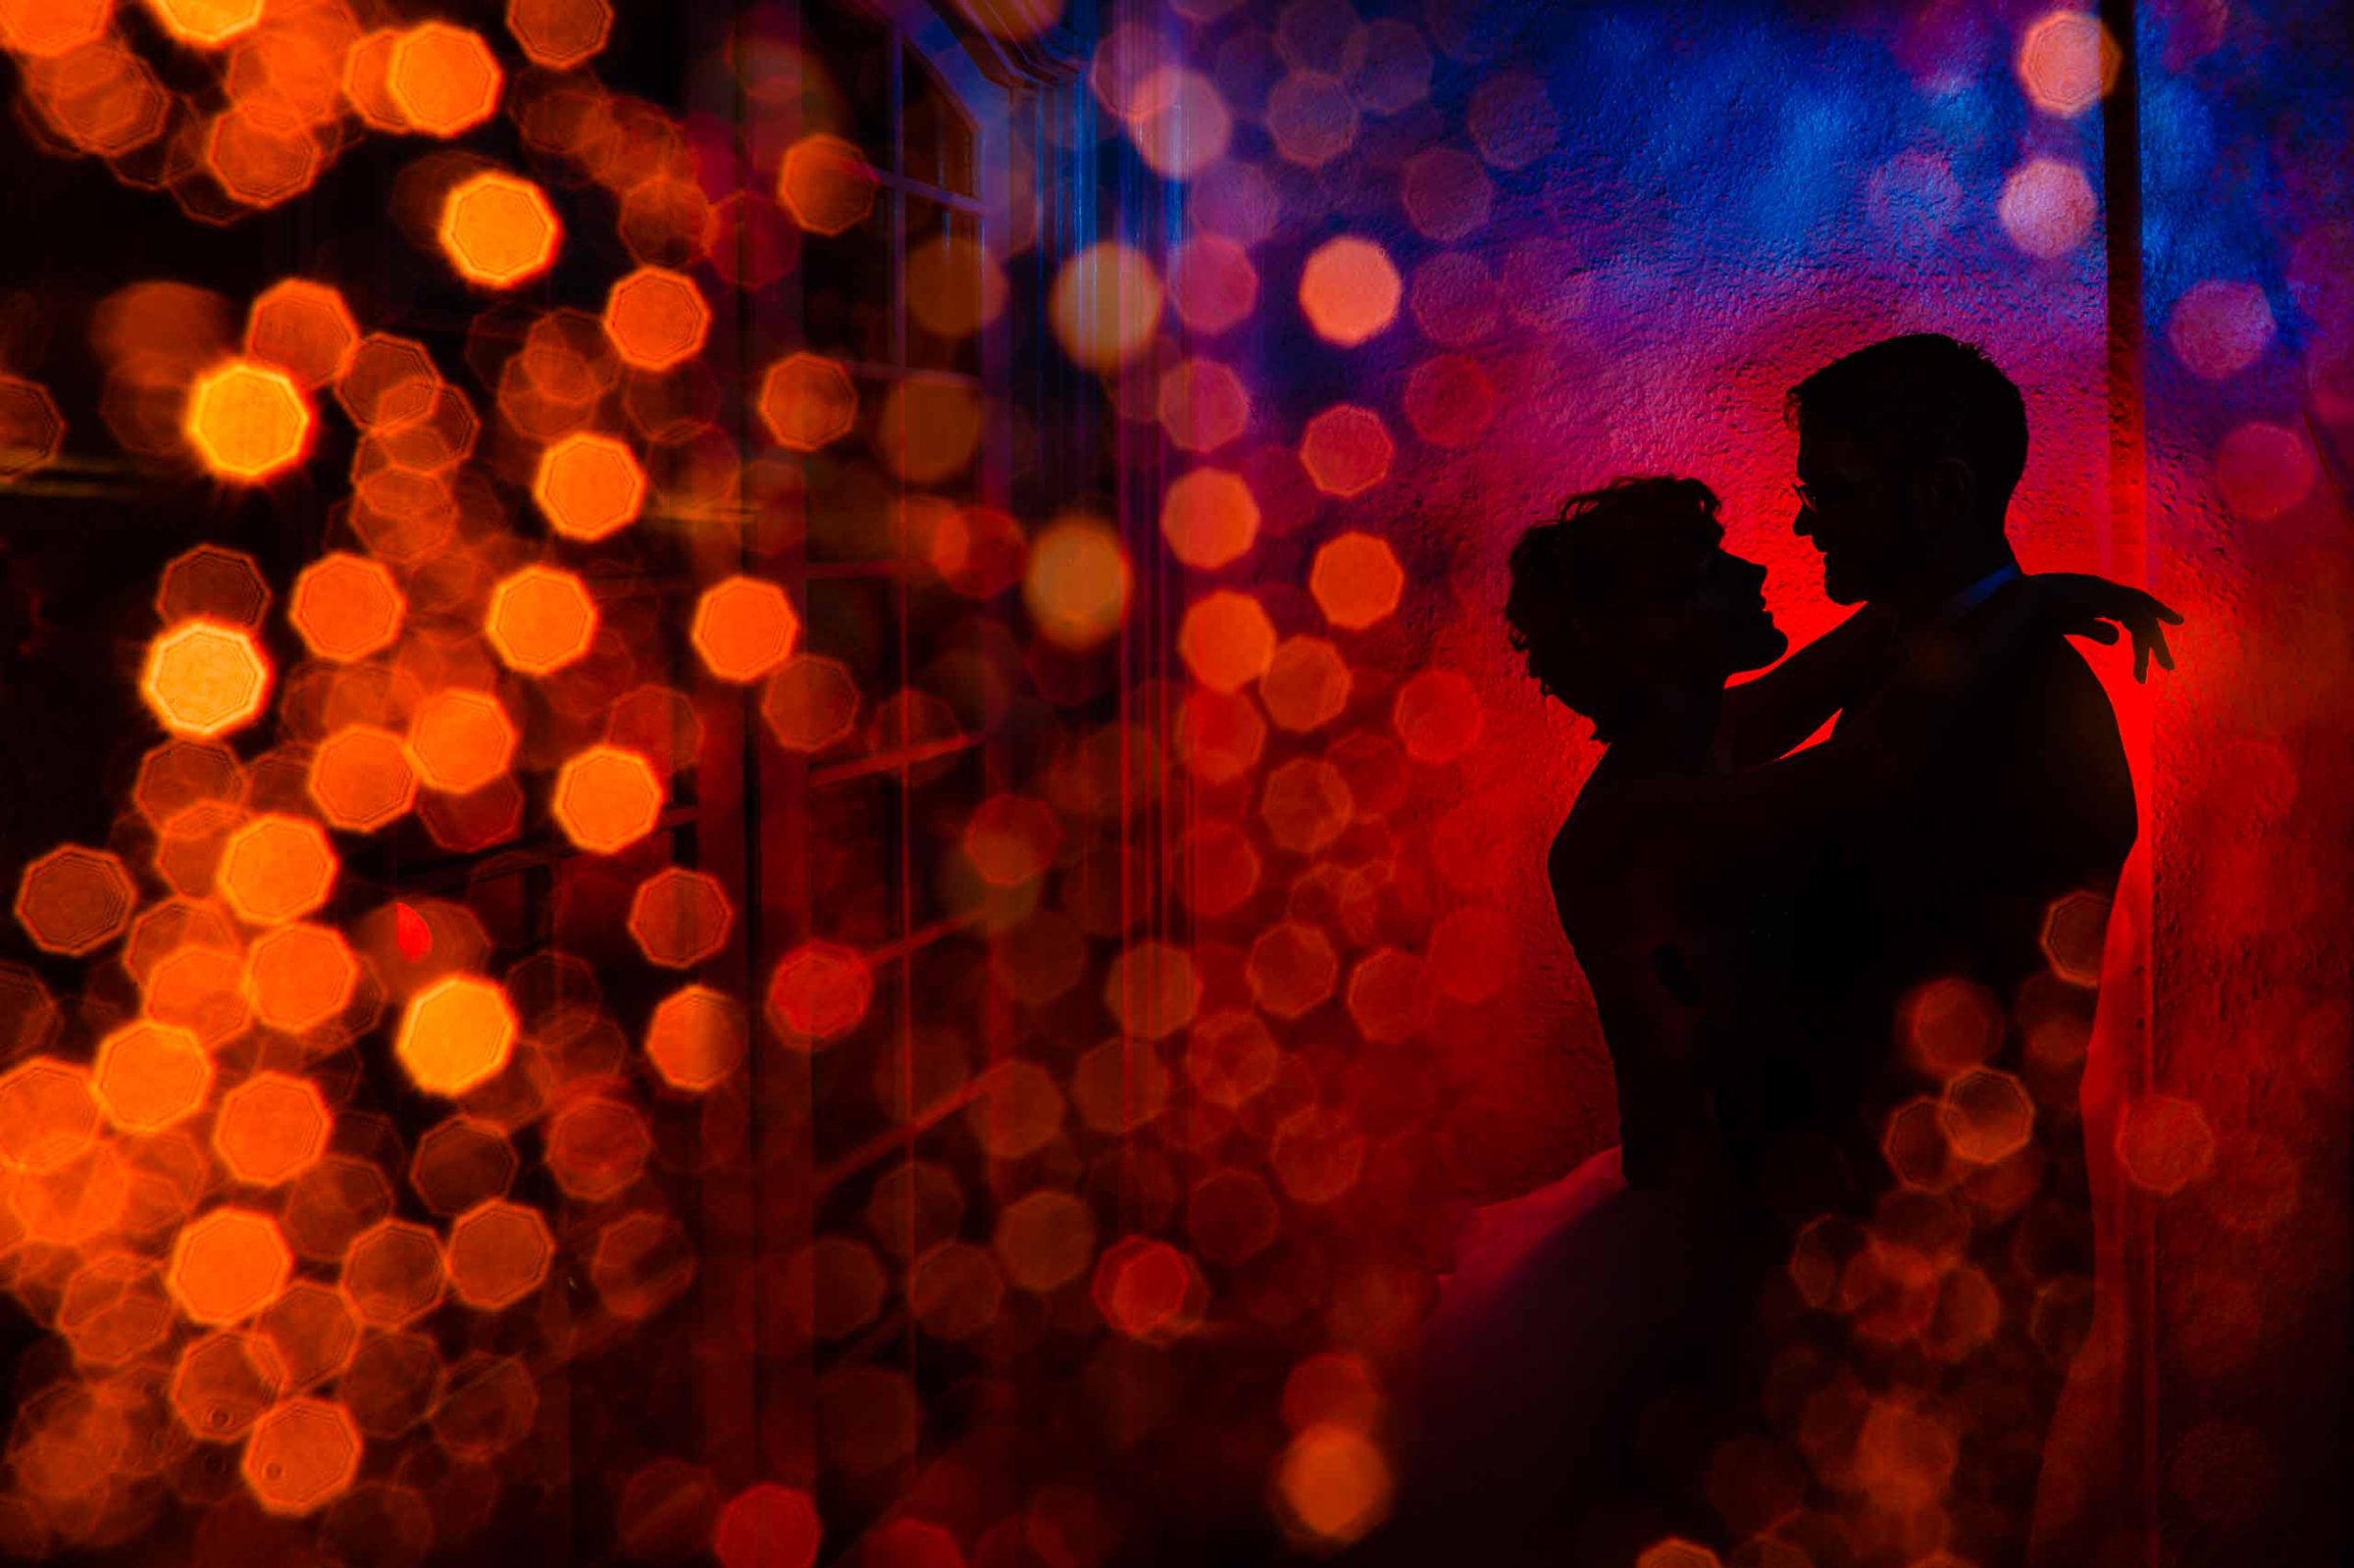 50-best-wedding-photo-concepts-bokeh-silhouette-in-red-and-orange-by-josandtree